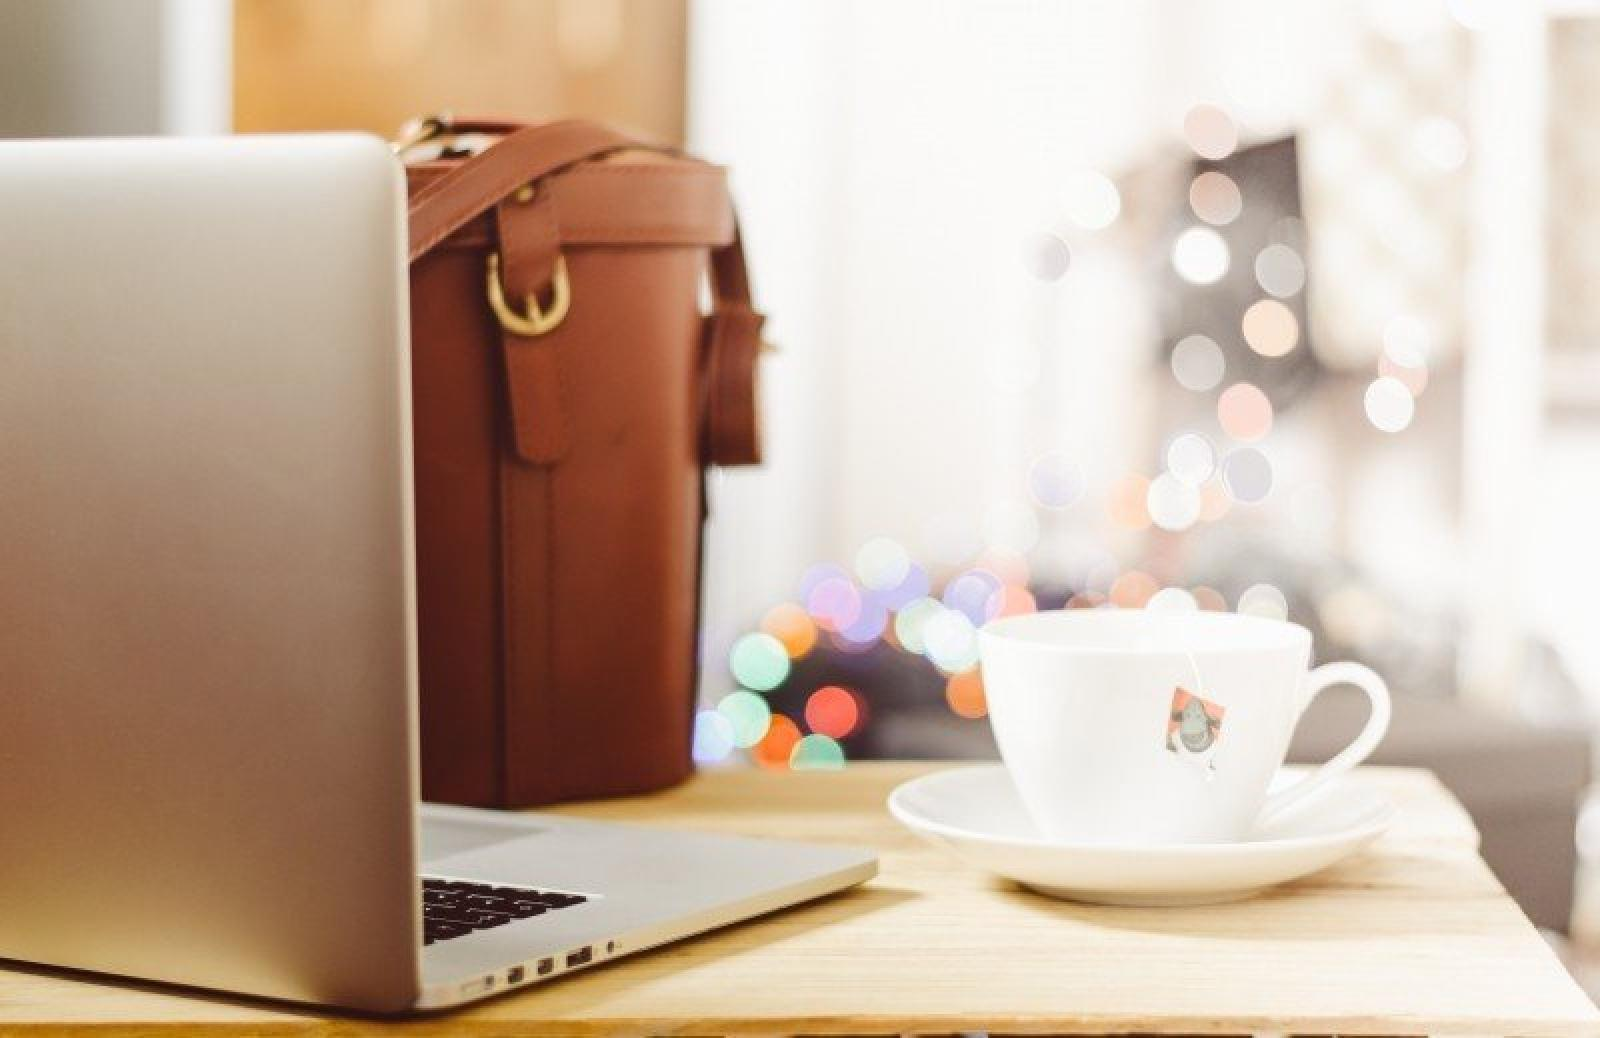 coffee cup and laptop with handbag on table